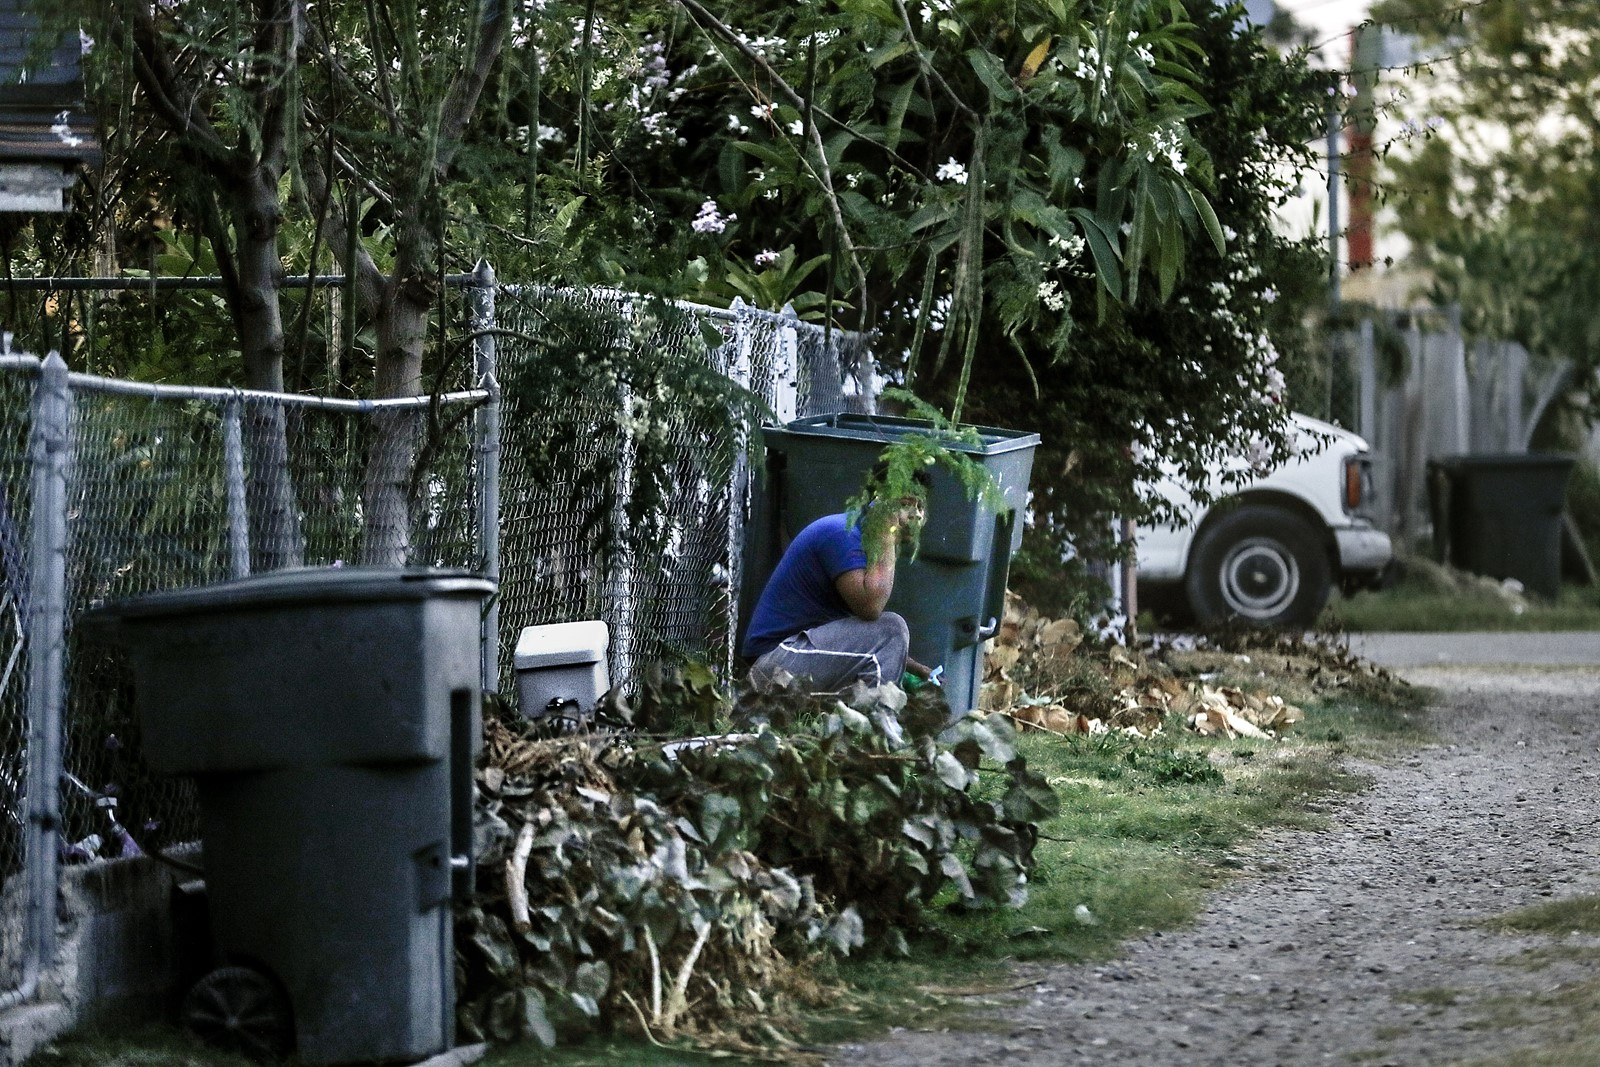 Eventually, the man huddles in an alleyway, using a cellphone, before heading toward a well-worn dirt path that ends at the home of a suspected smuggler. — Photograph: Robert Gauthier/Los Angeles Times.